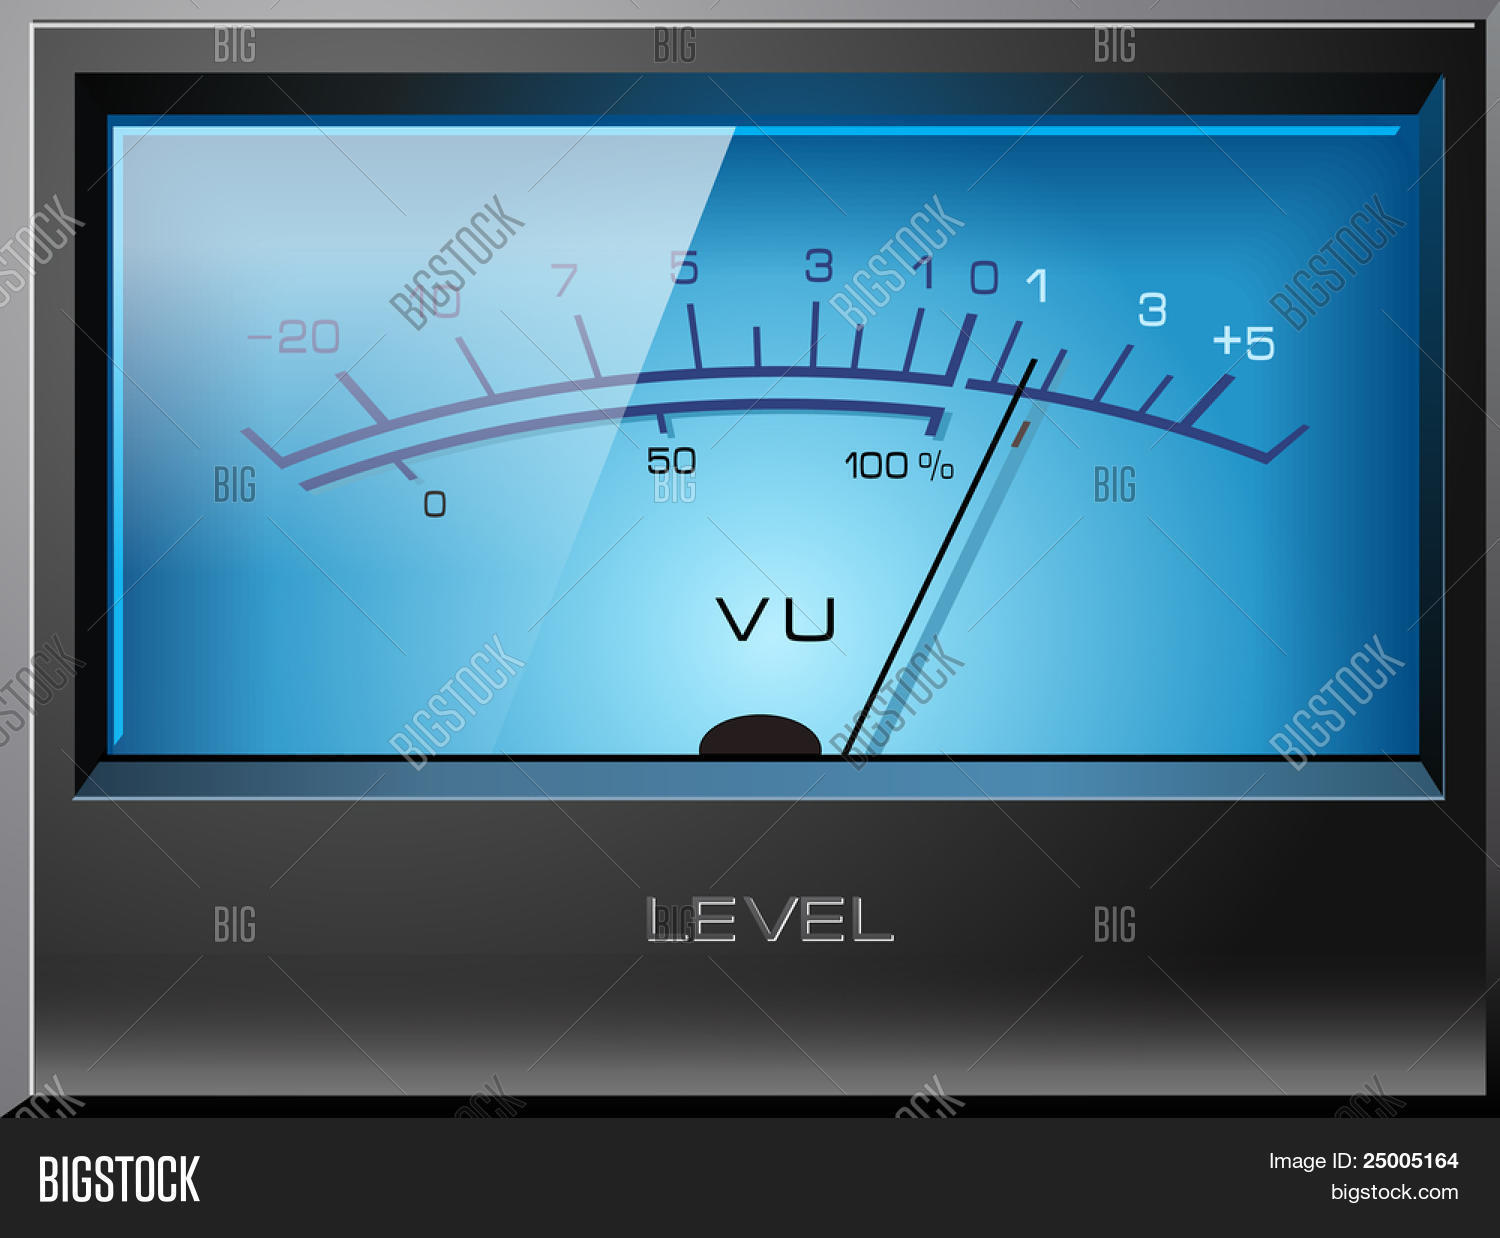 Analog Vu Meter Blue Vector Photo Free Trial Bigstock 3 Detailed